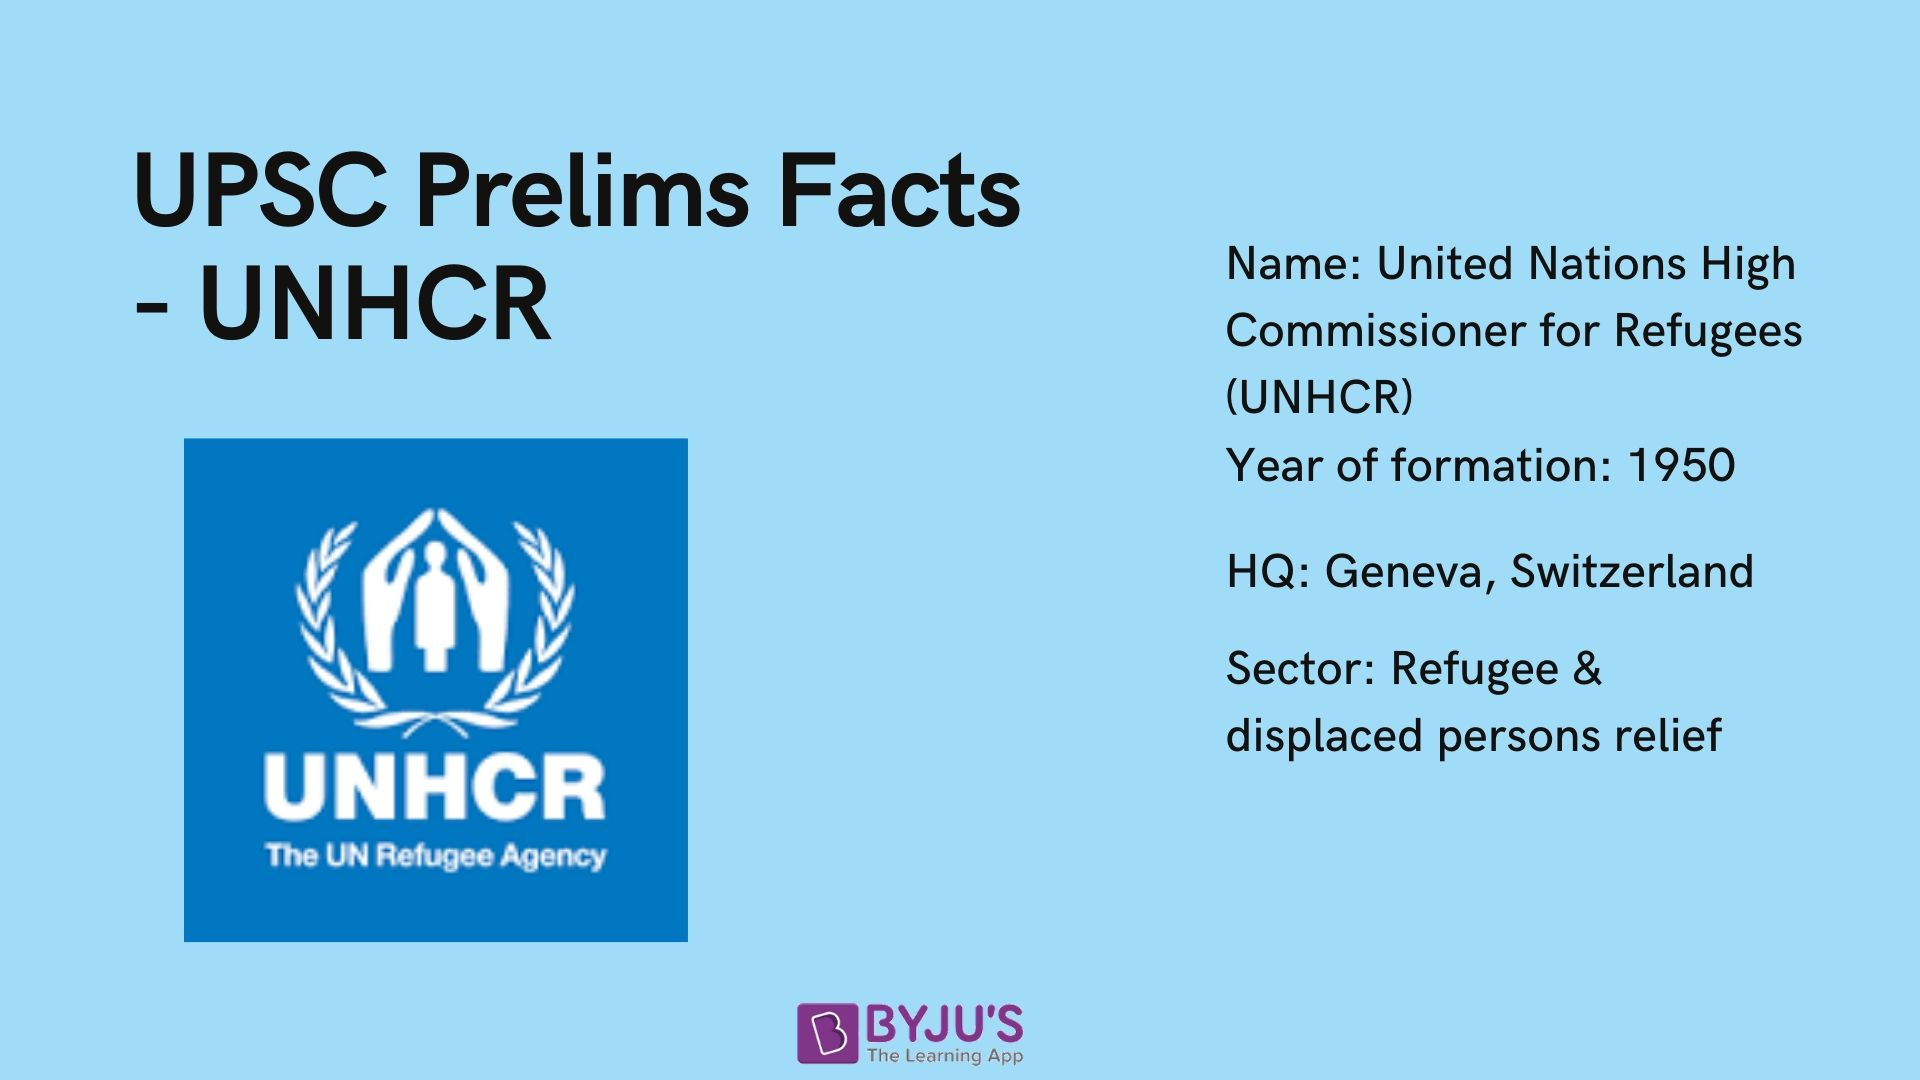 UPSC Prelims Facts for UNHCR